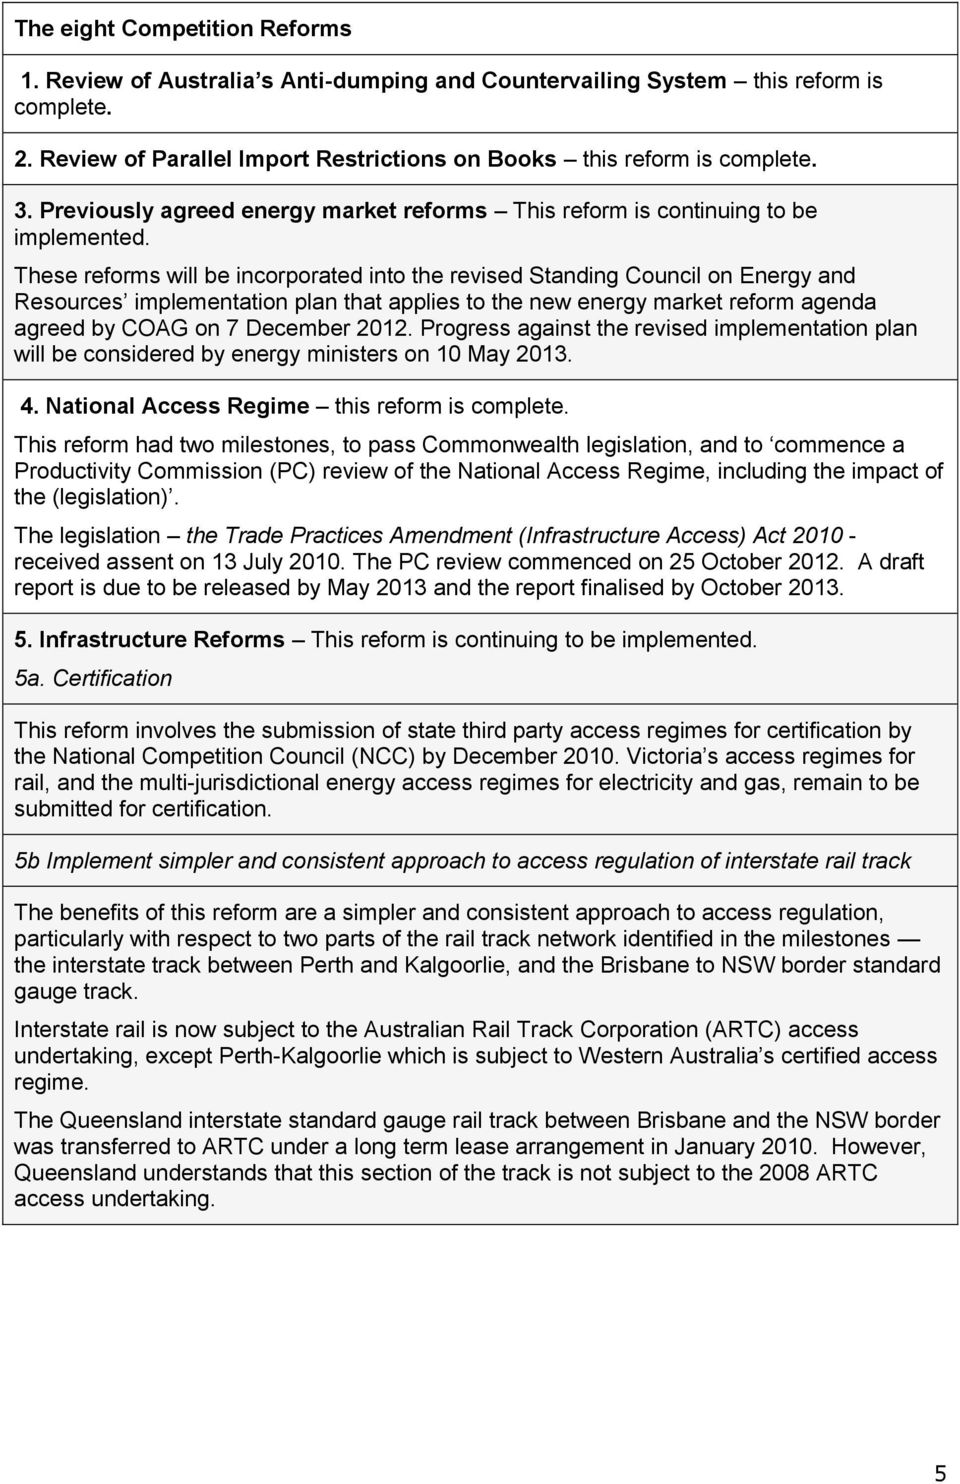 These reforms will be incorporated into the revised Standing Council on Energy and Resources implementation plan that applies to the new energy market reform agenda agreed by COAG on 7 December 2012.